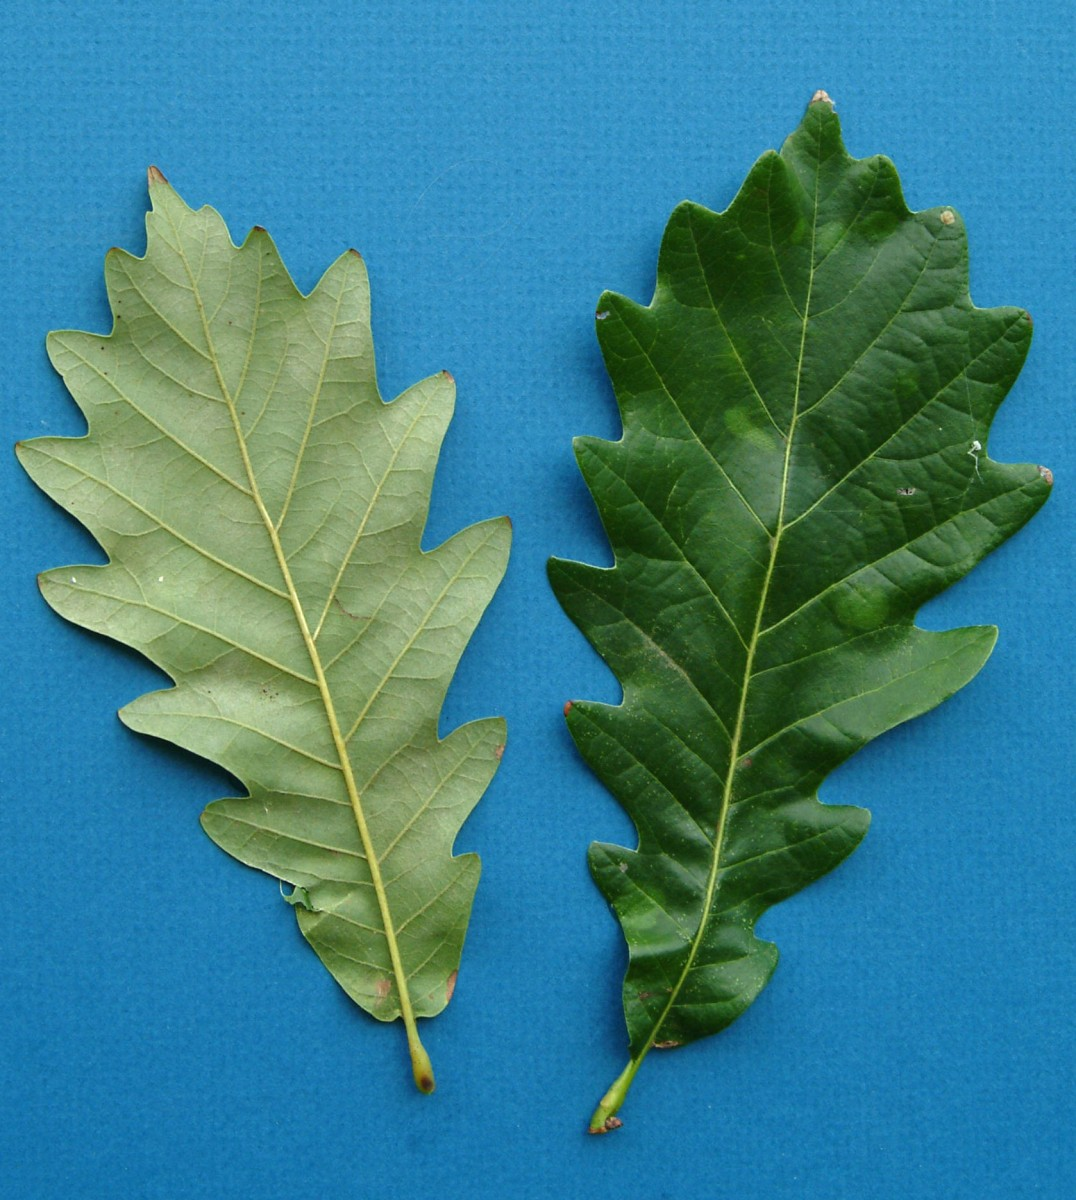 White Oak Leaf Identification ~ Kd woods company seeing the oak trees for forest